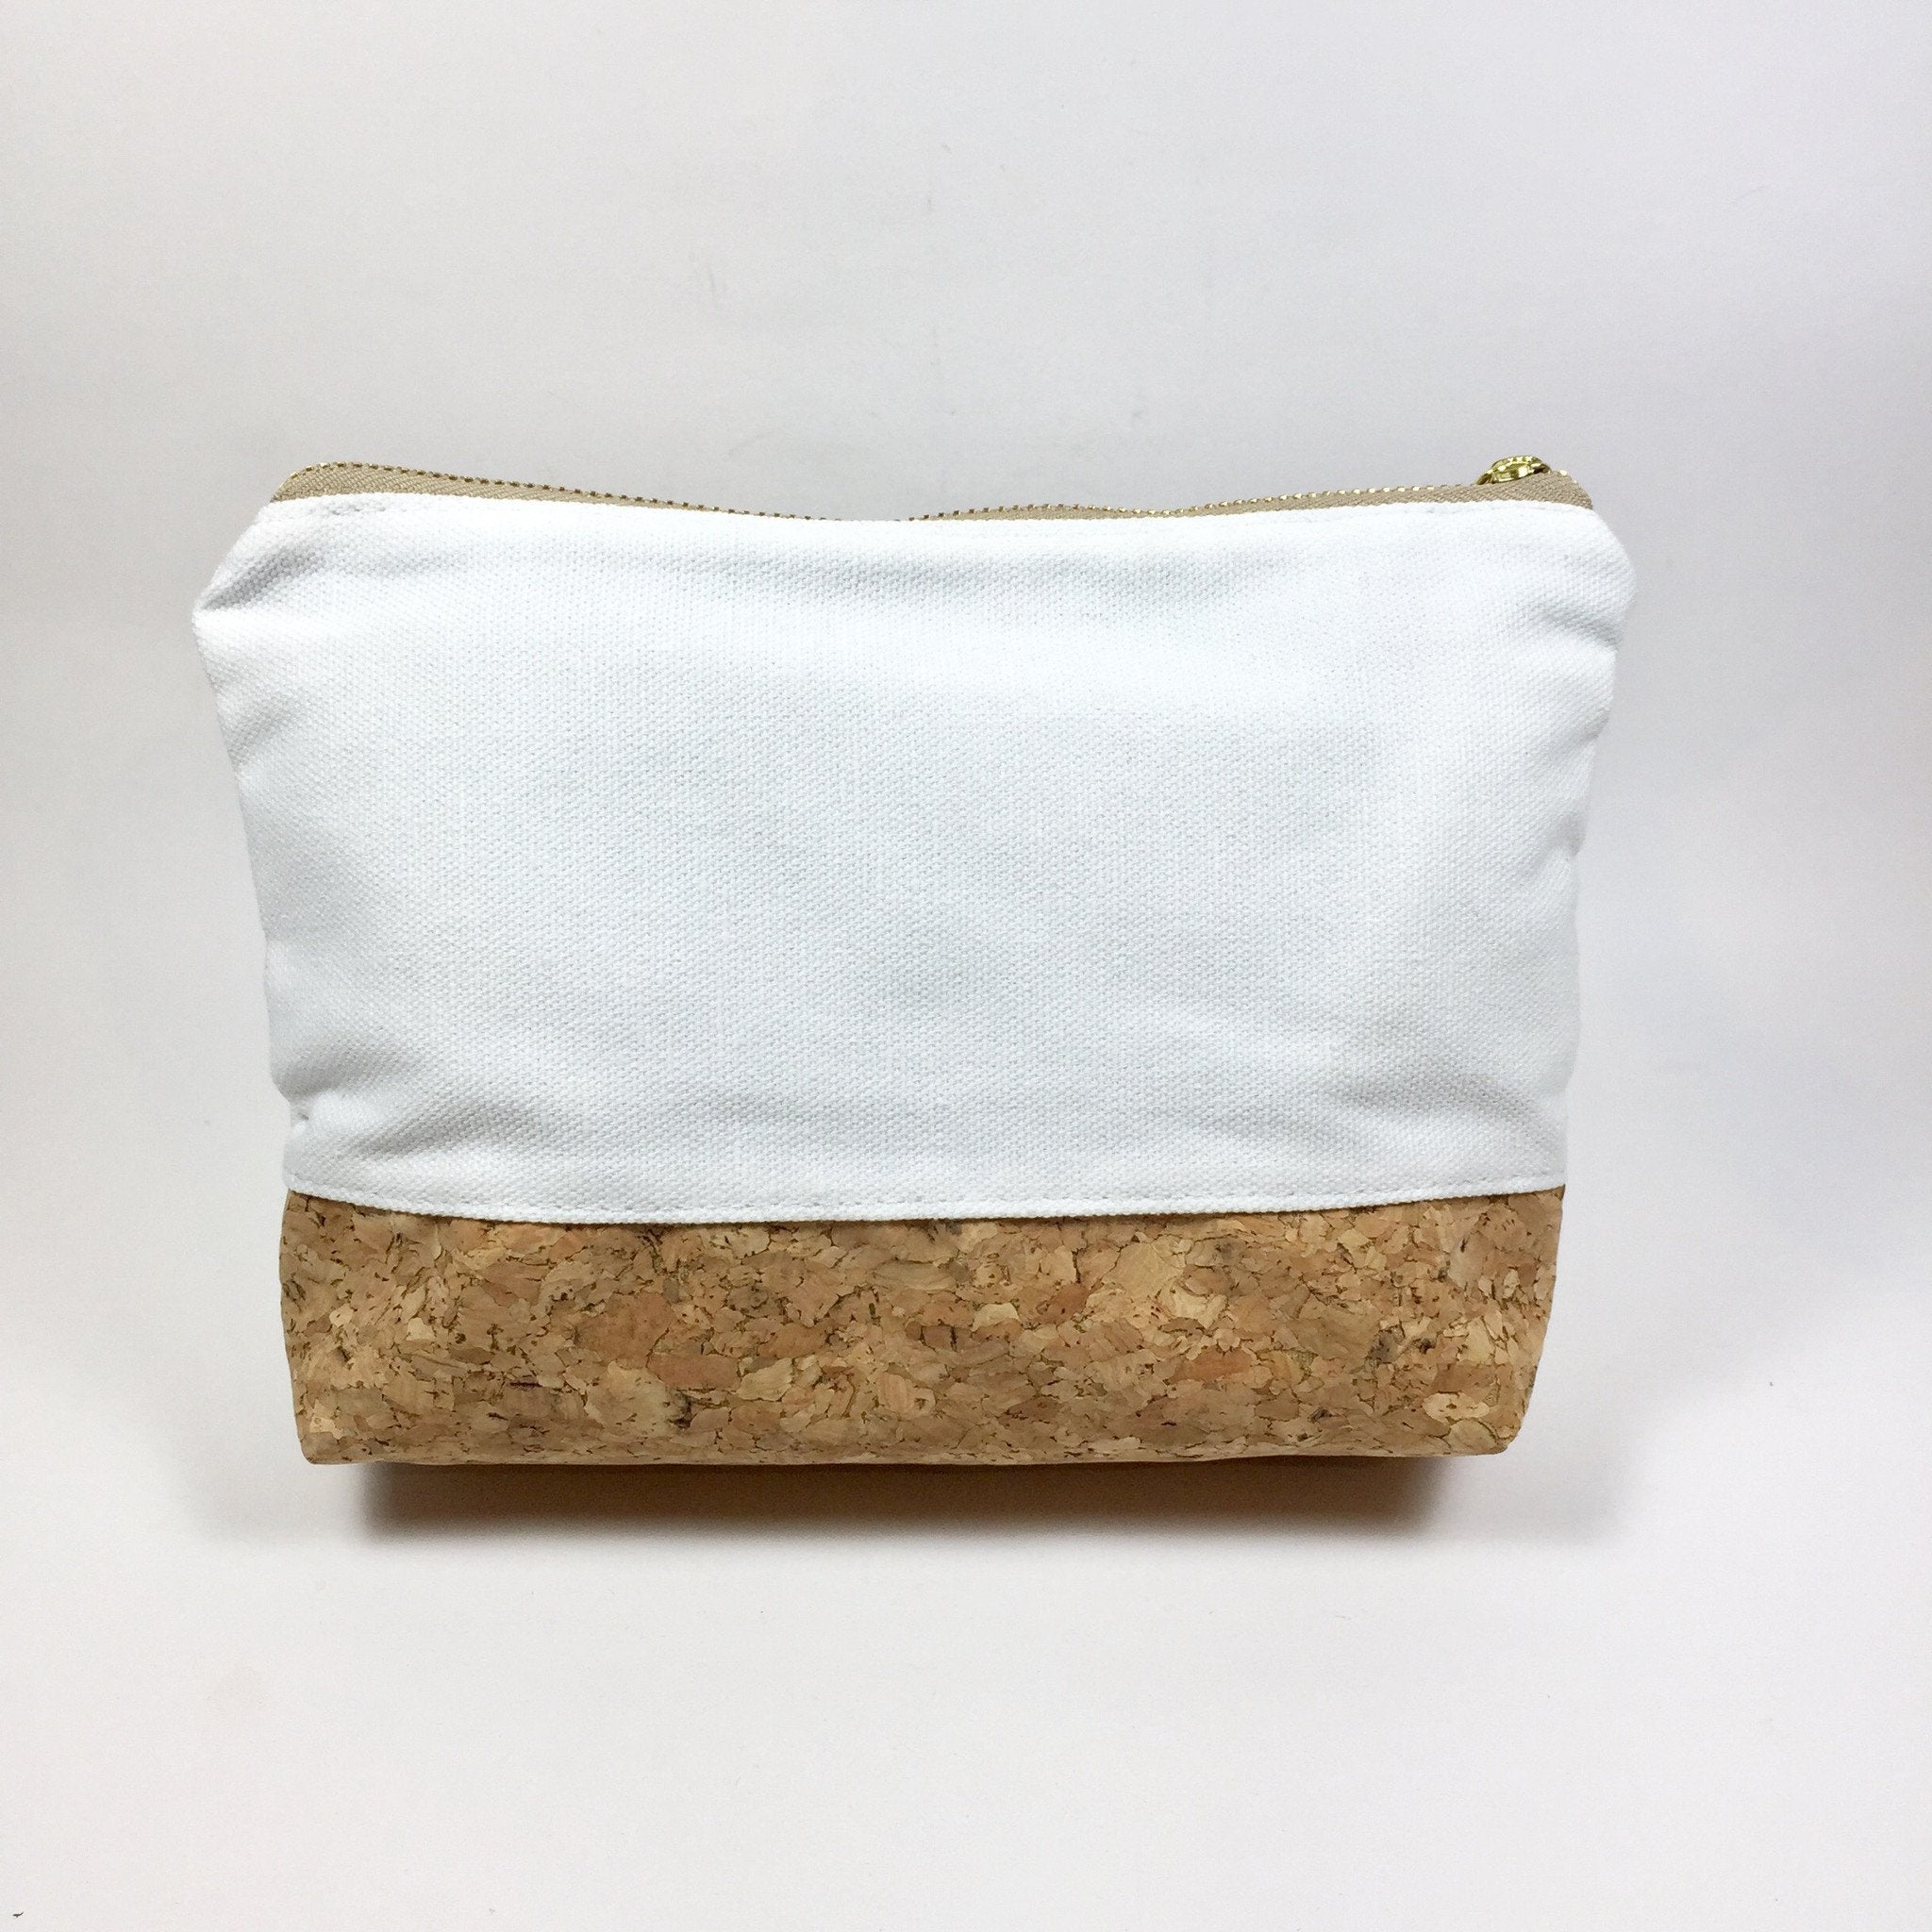 Miley Cork Pouch in Canvas